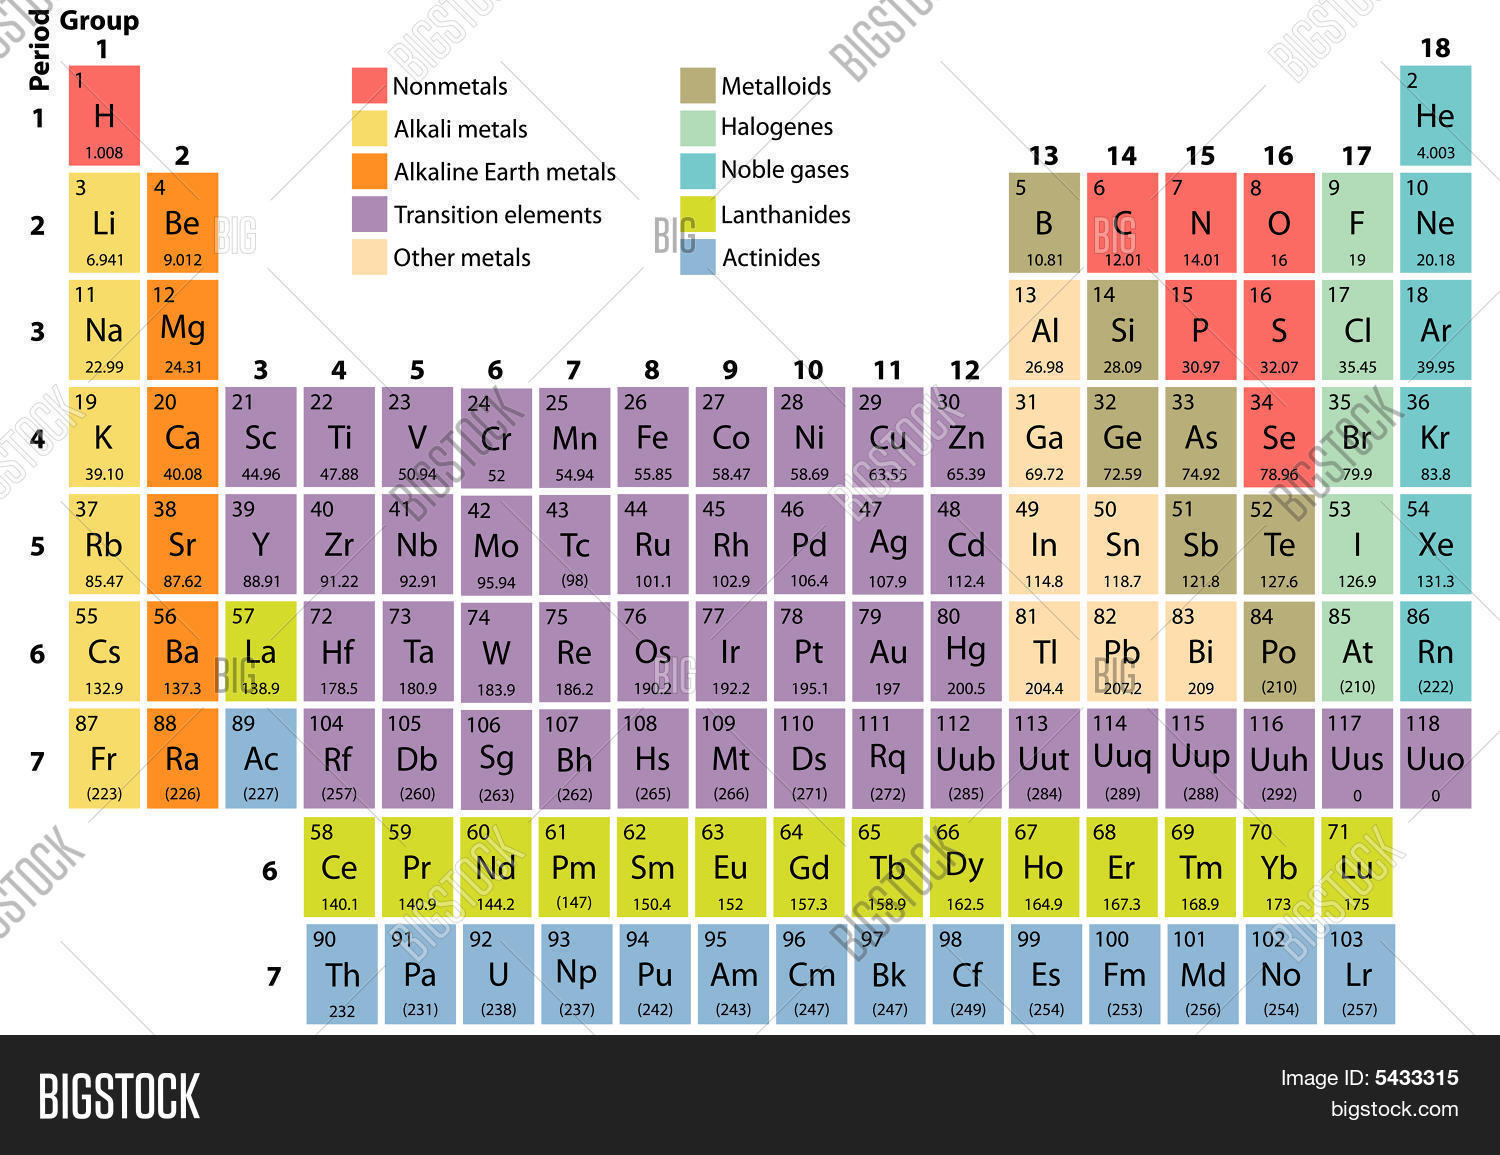 complete periodic table of the elements with atomic number symbol and weight - Periodic Table Of Elements Be